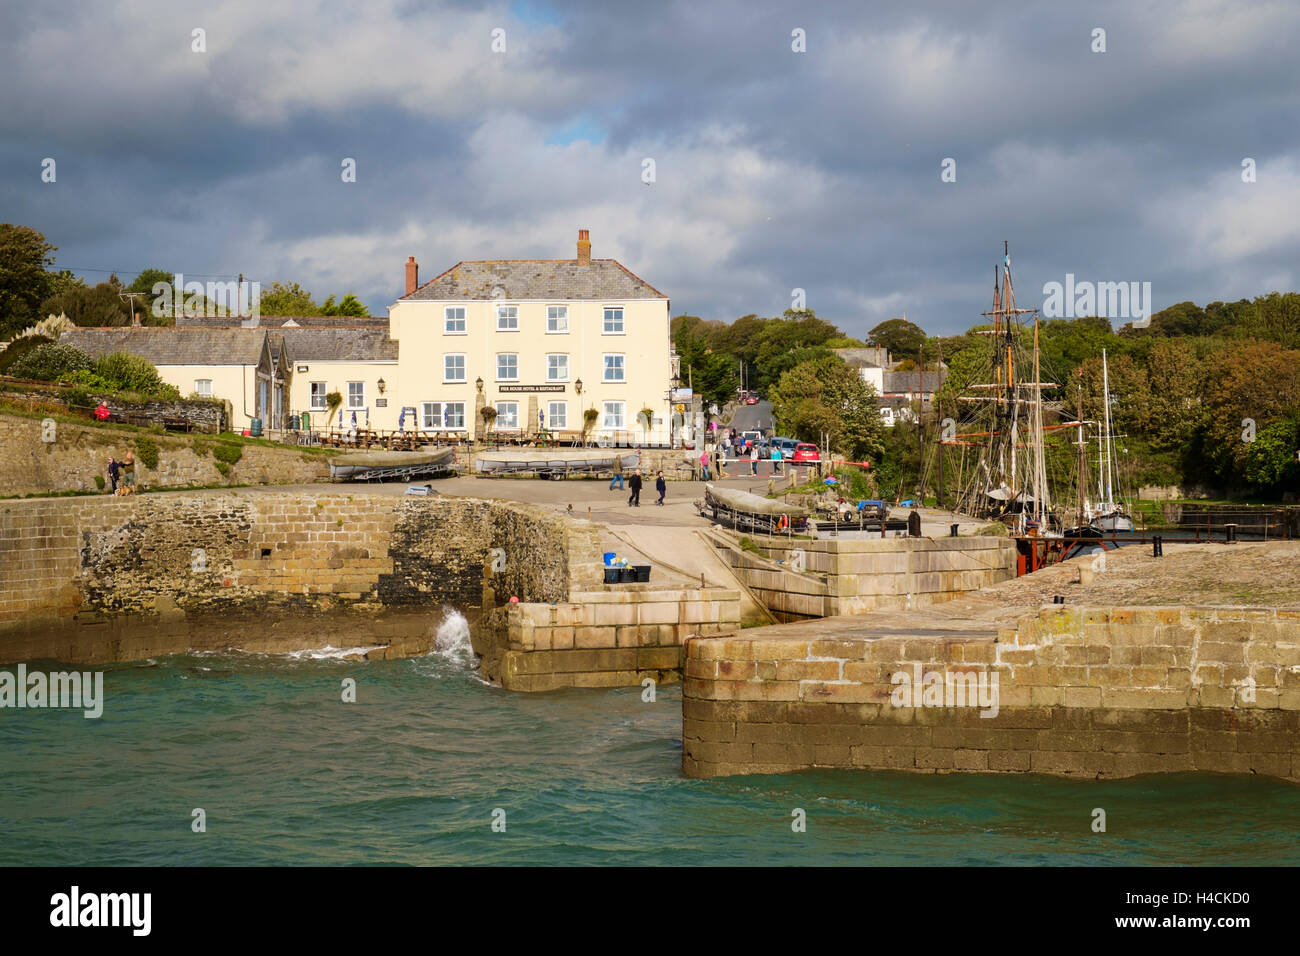 Charlestown harbour and pub, Cornwall, England, UK - Stock Image